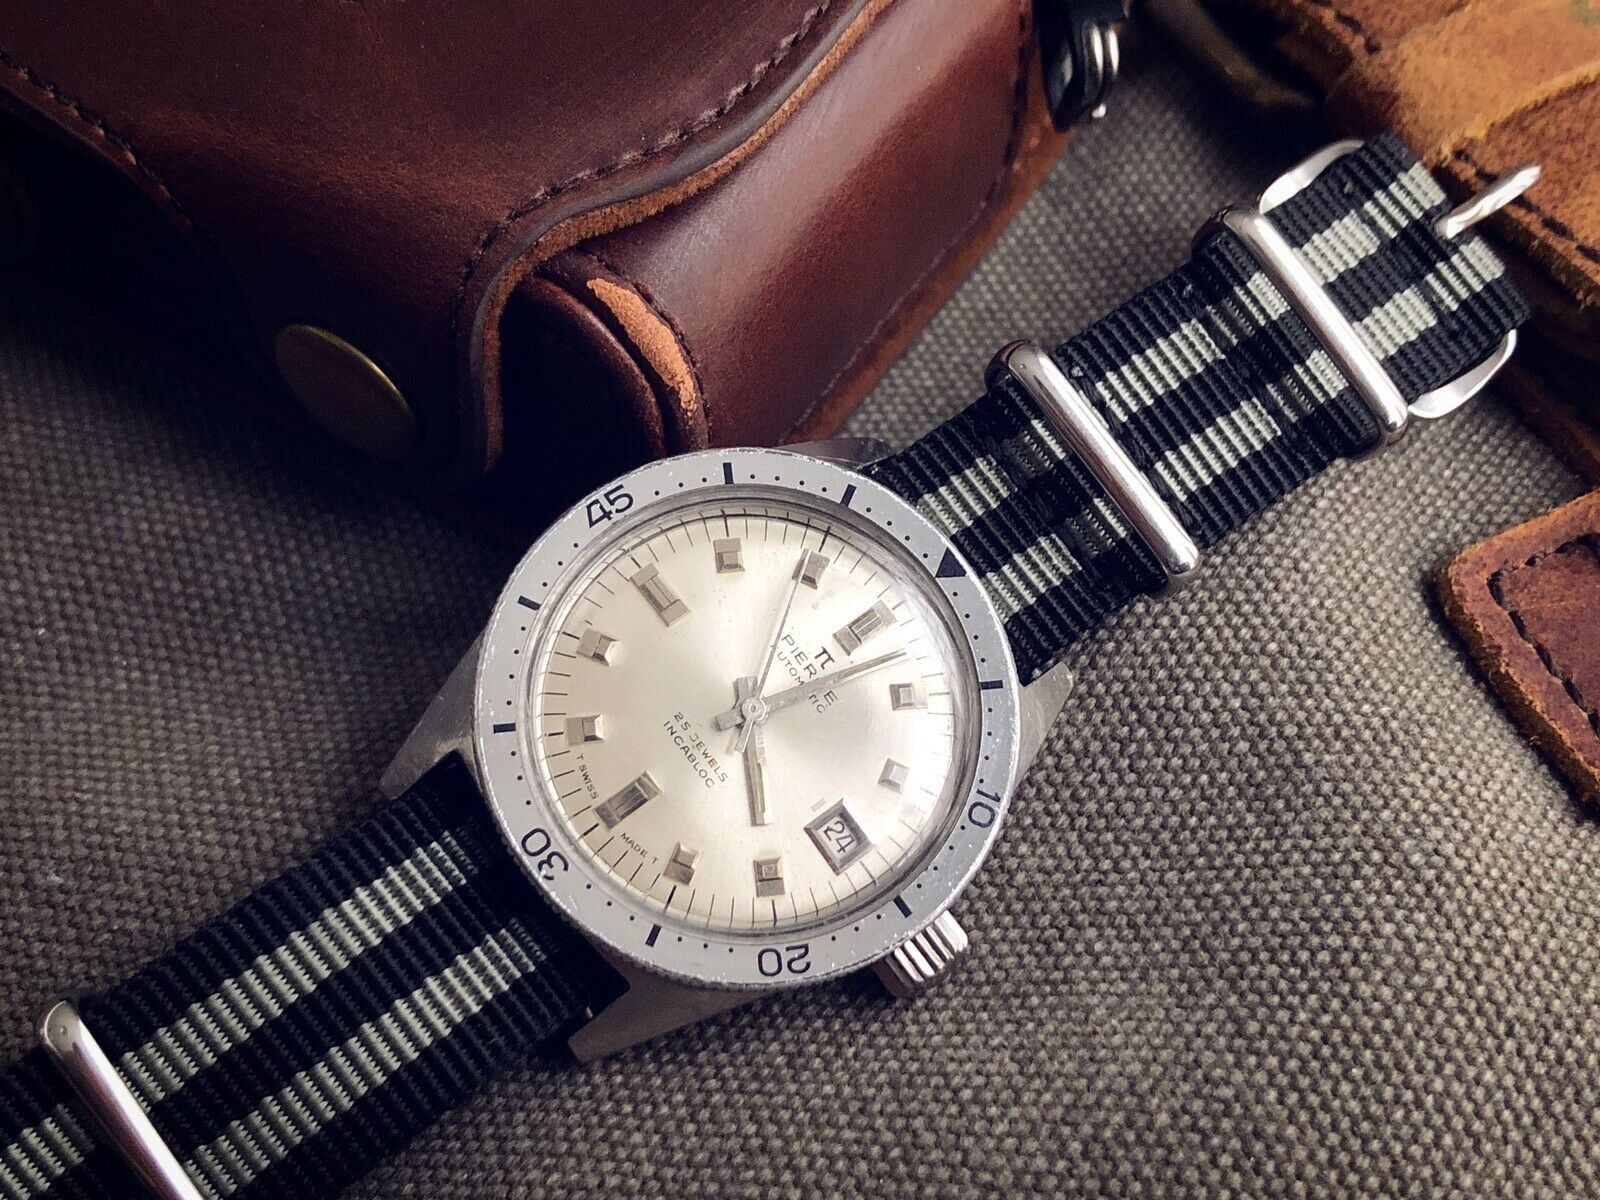 PIERCE DIVER WATCH. REF 337462